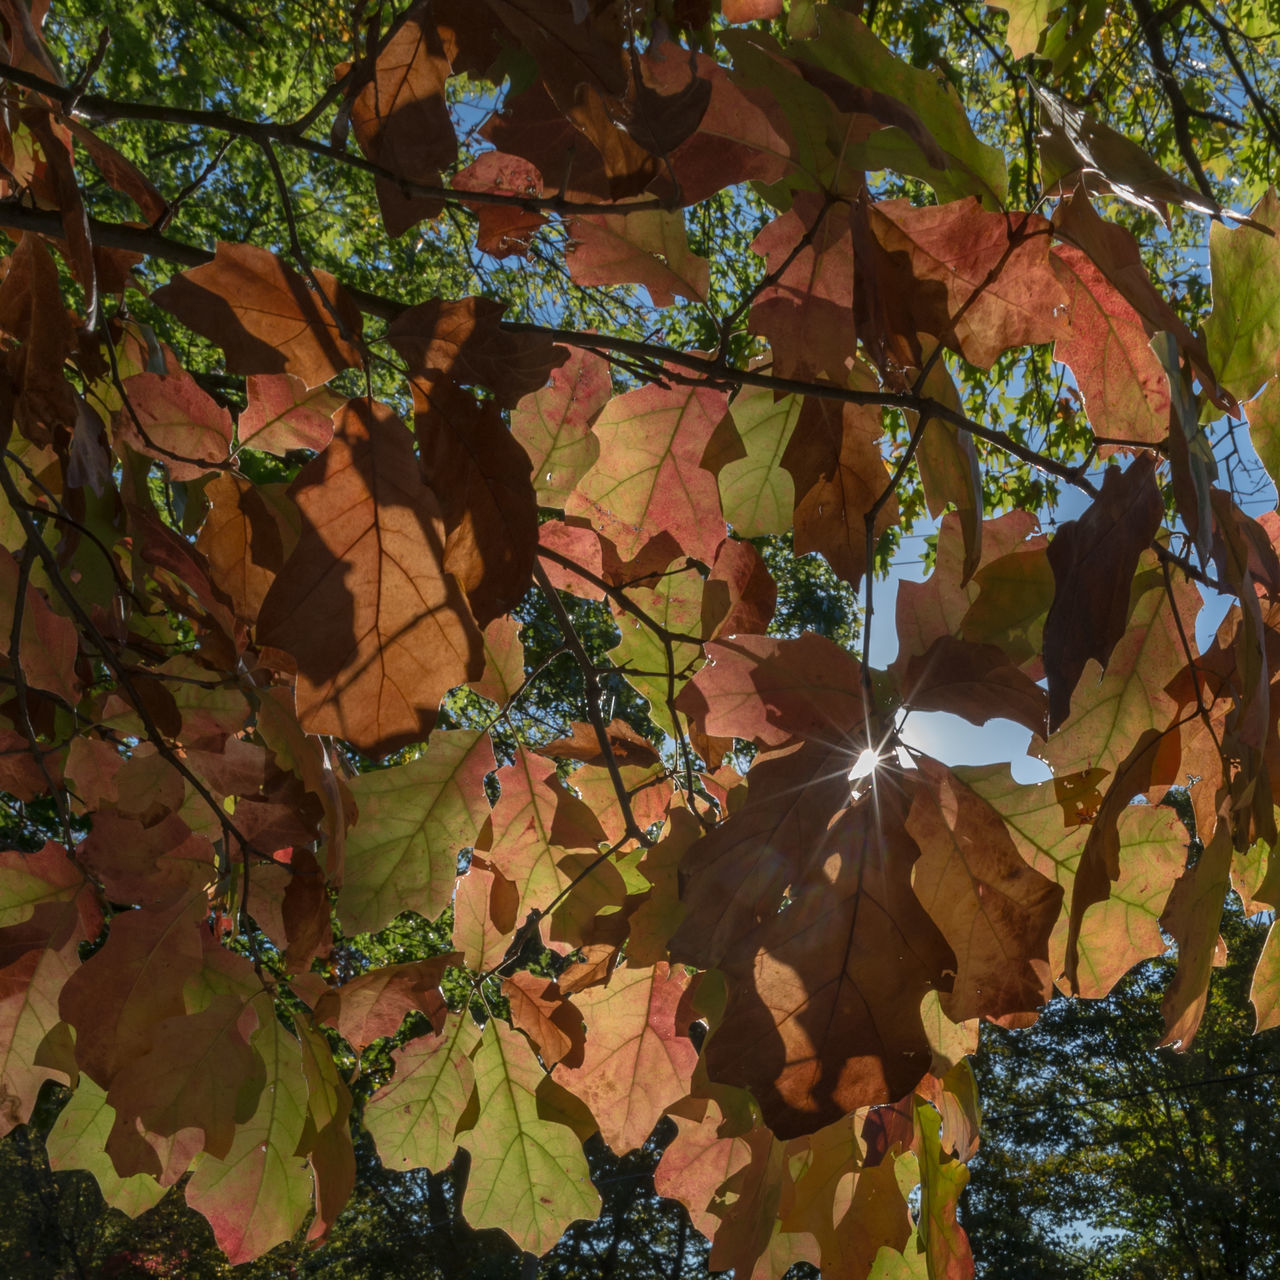 leaf, autumn, tree, branch, change, nature, beauty in nature, day, growth, outdoors, no people, low angle view, close-up, fragility, maple, freshness